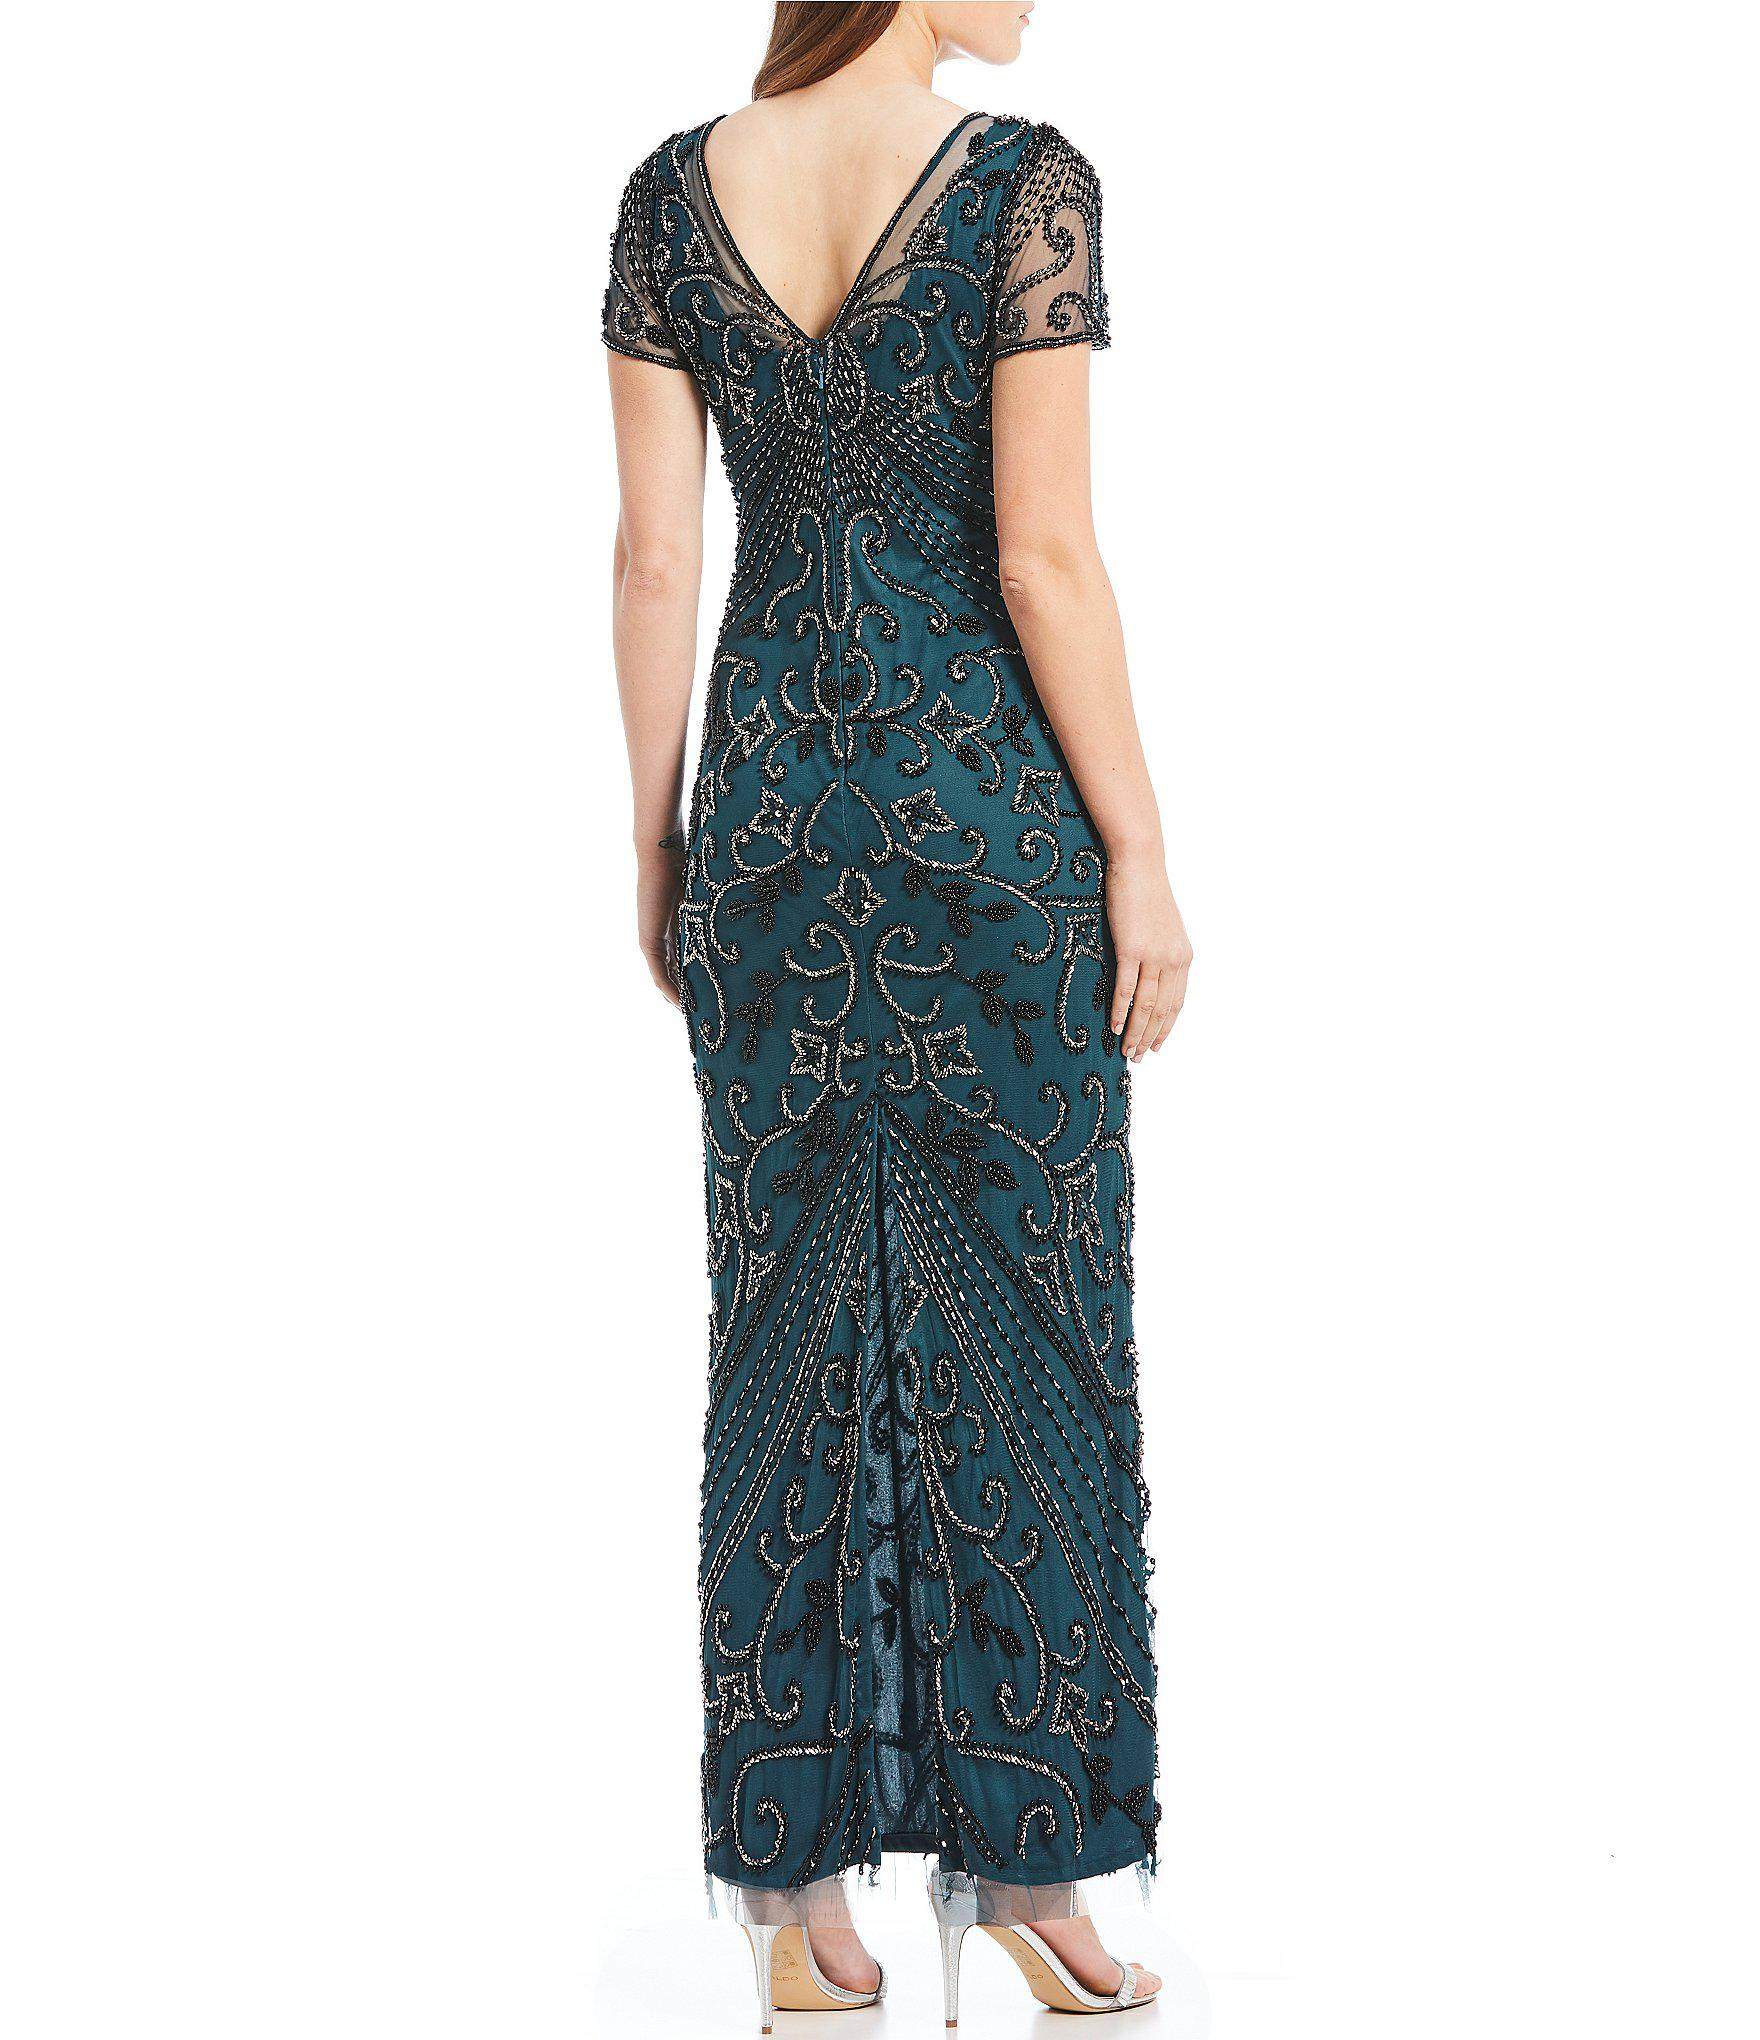 7a38d319c4596 Pisarro Nights - Multicolor Petite Size V-neck Beaded Gown - Lyst. View  fullscreen